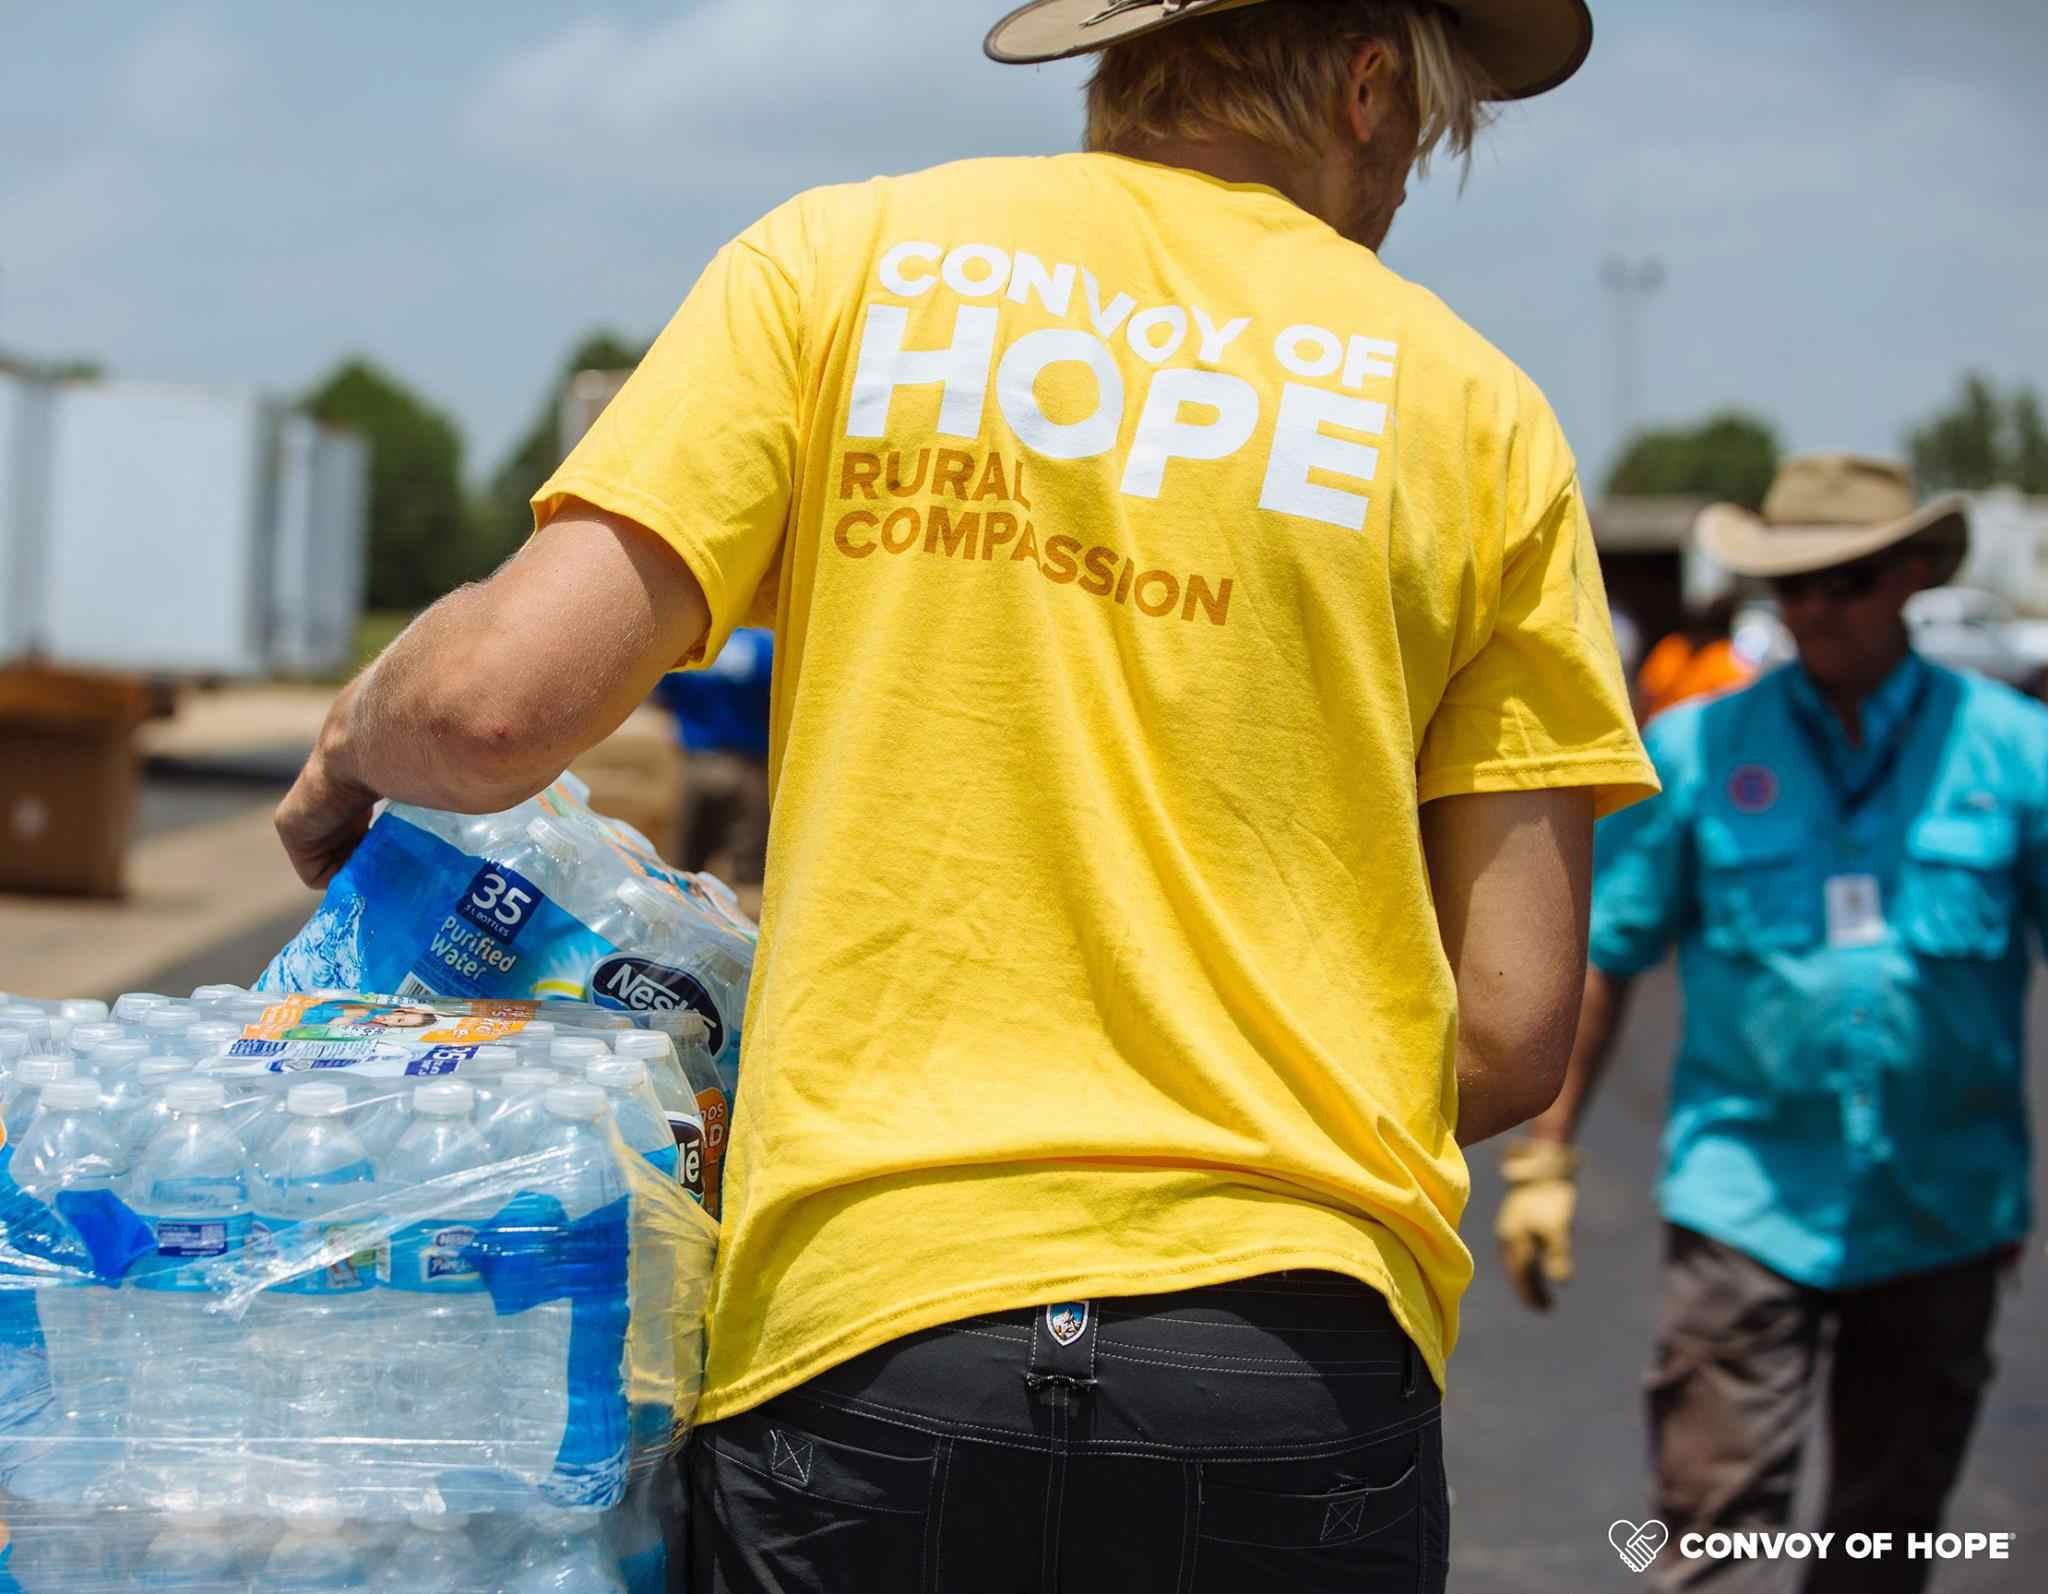 Convoy of Hope volunteer helping with a disaster.